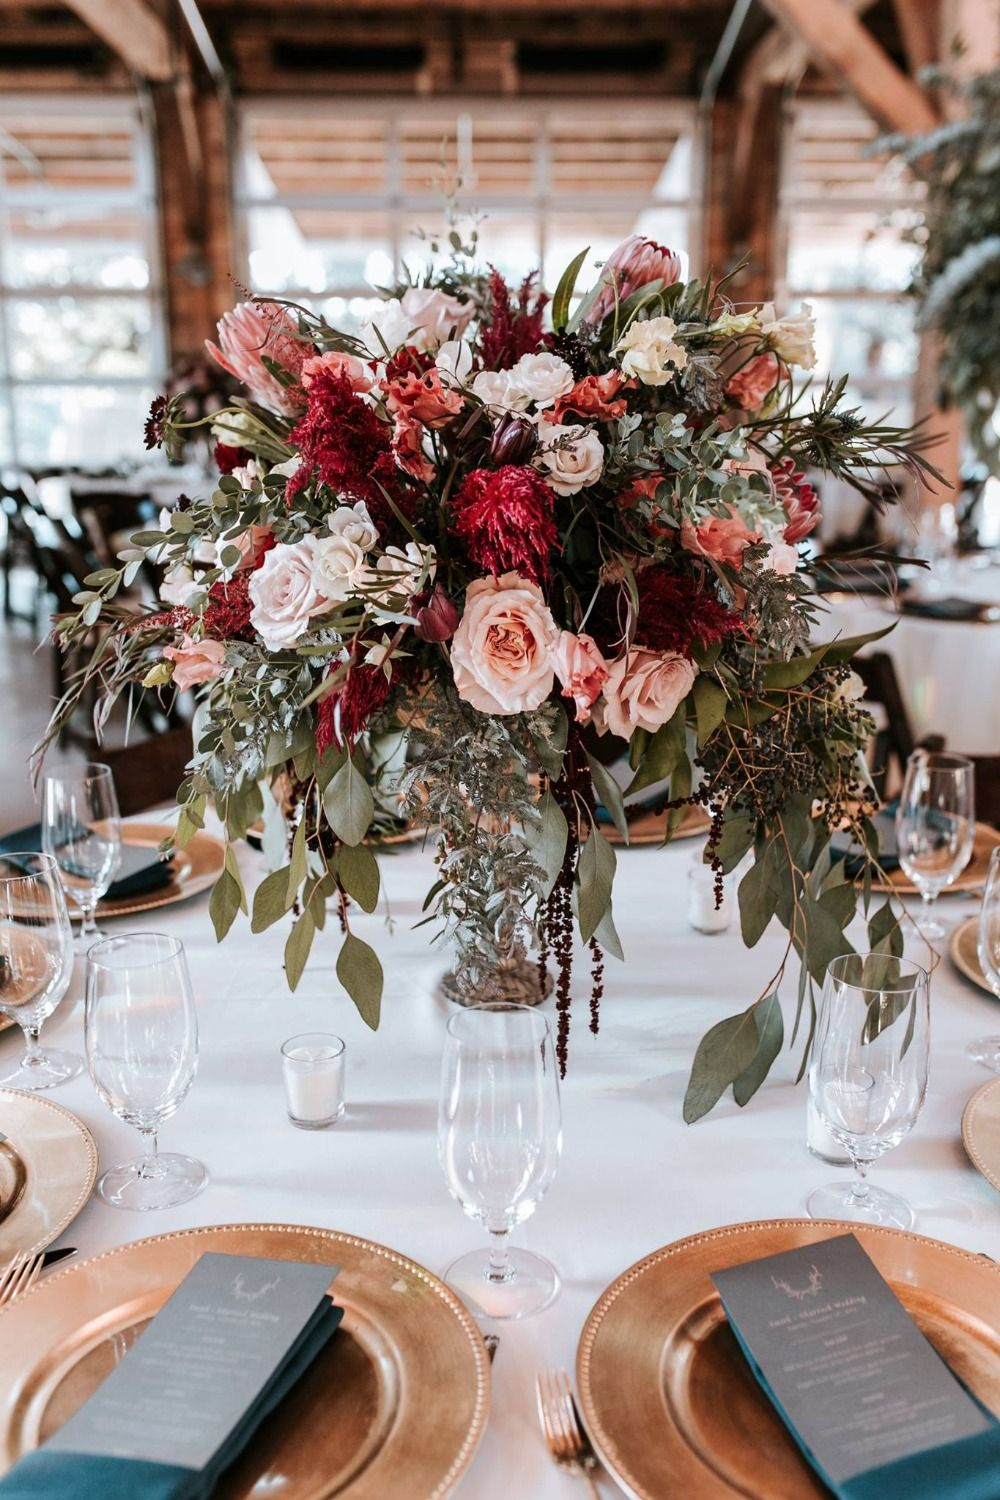 Composition Florale Centre De Table Automne from bachelorette to bridesmaid, jojo rocked this revelry